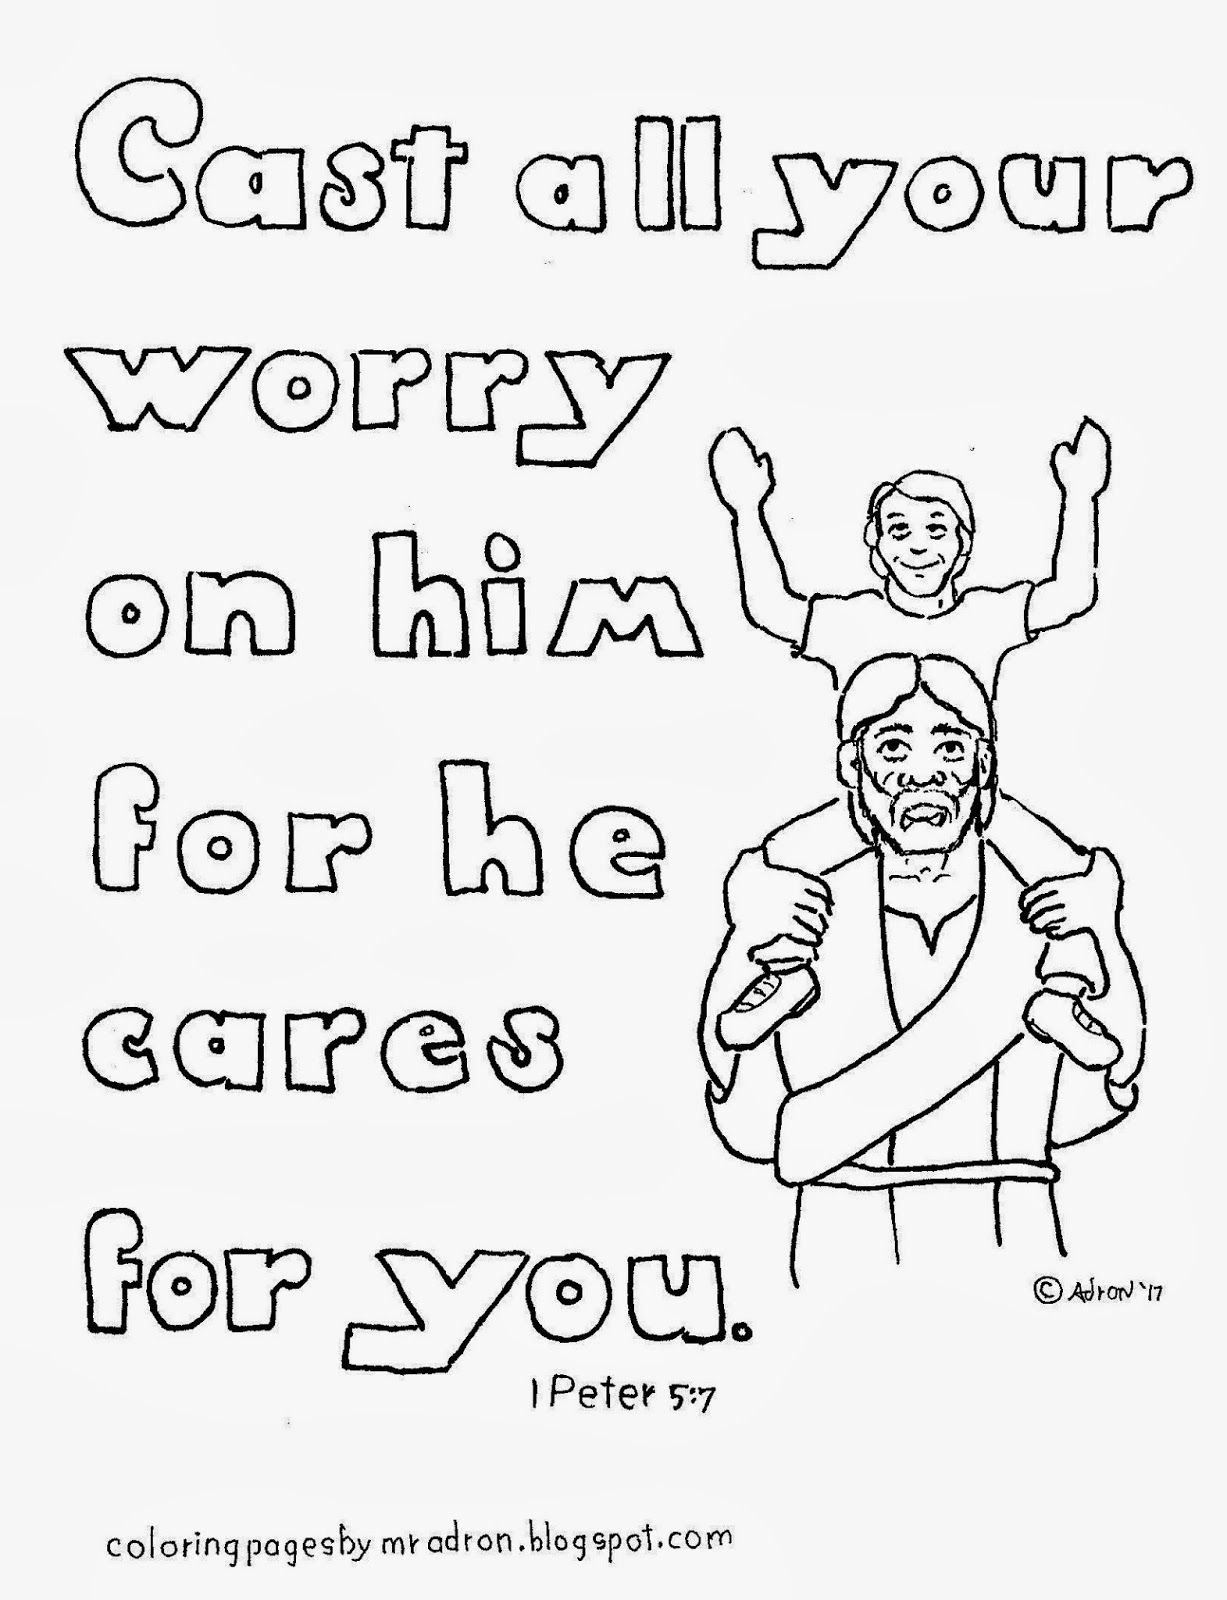 Coloring Pages For Kids By Mr Adron Cast Your Worry On Him 1 Peter 57 Free Co